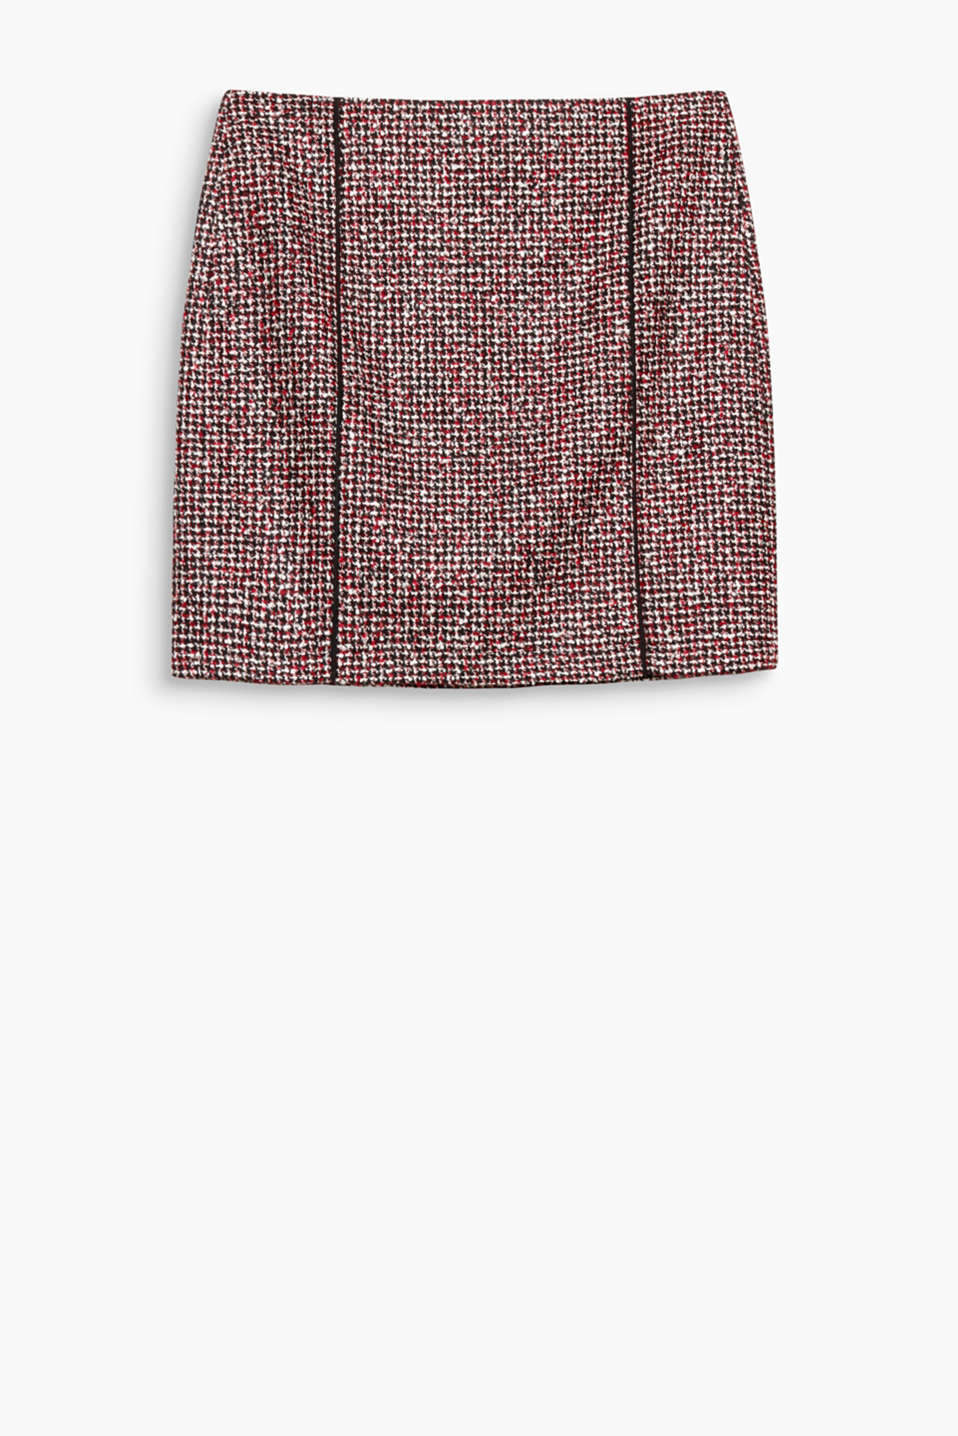 Multi-mini: this colourful tweed skirt with a stylish houndstooth pattern is great for wearing to work, the city or to parties!